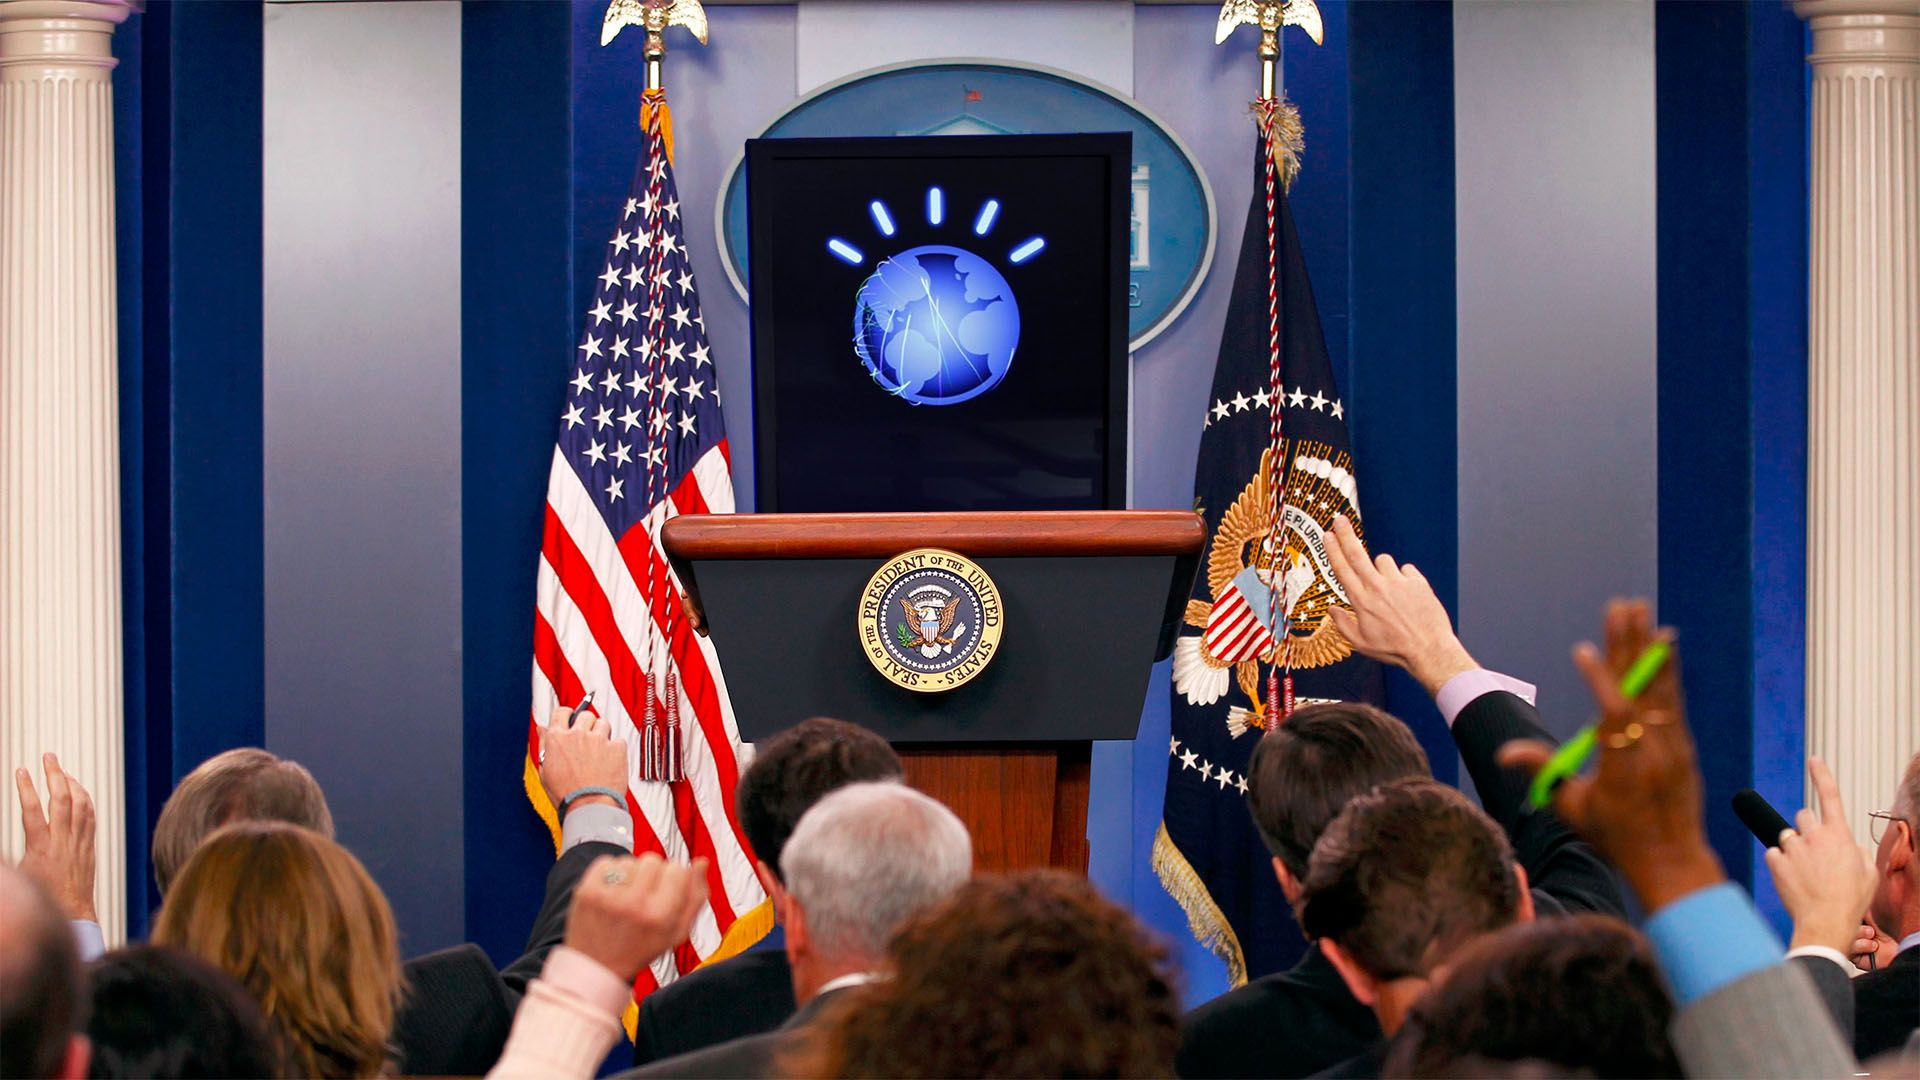 Could A Robot Run For President In 2020